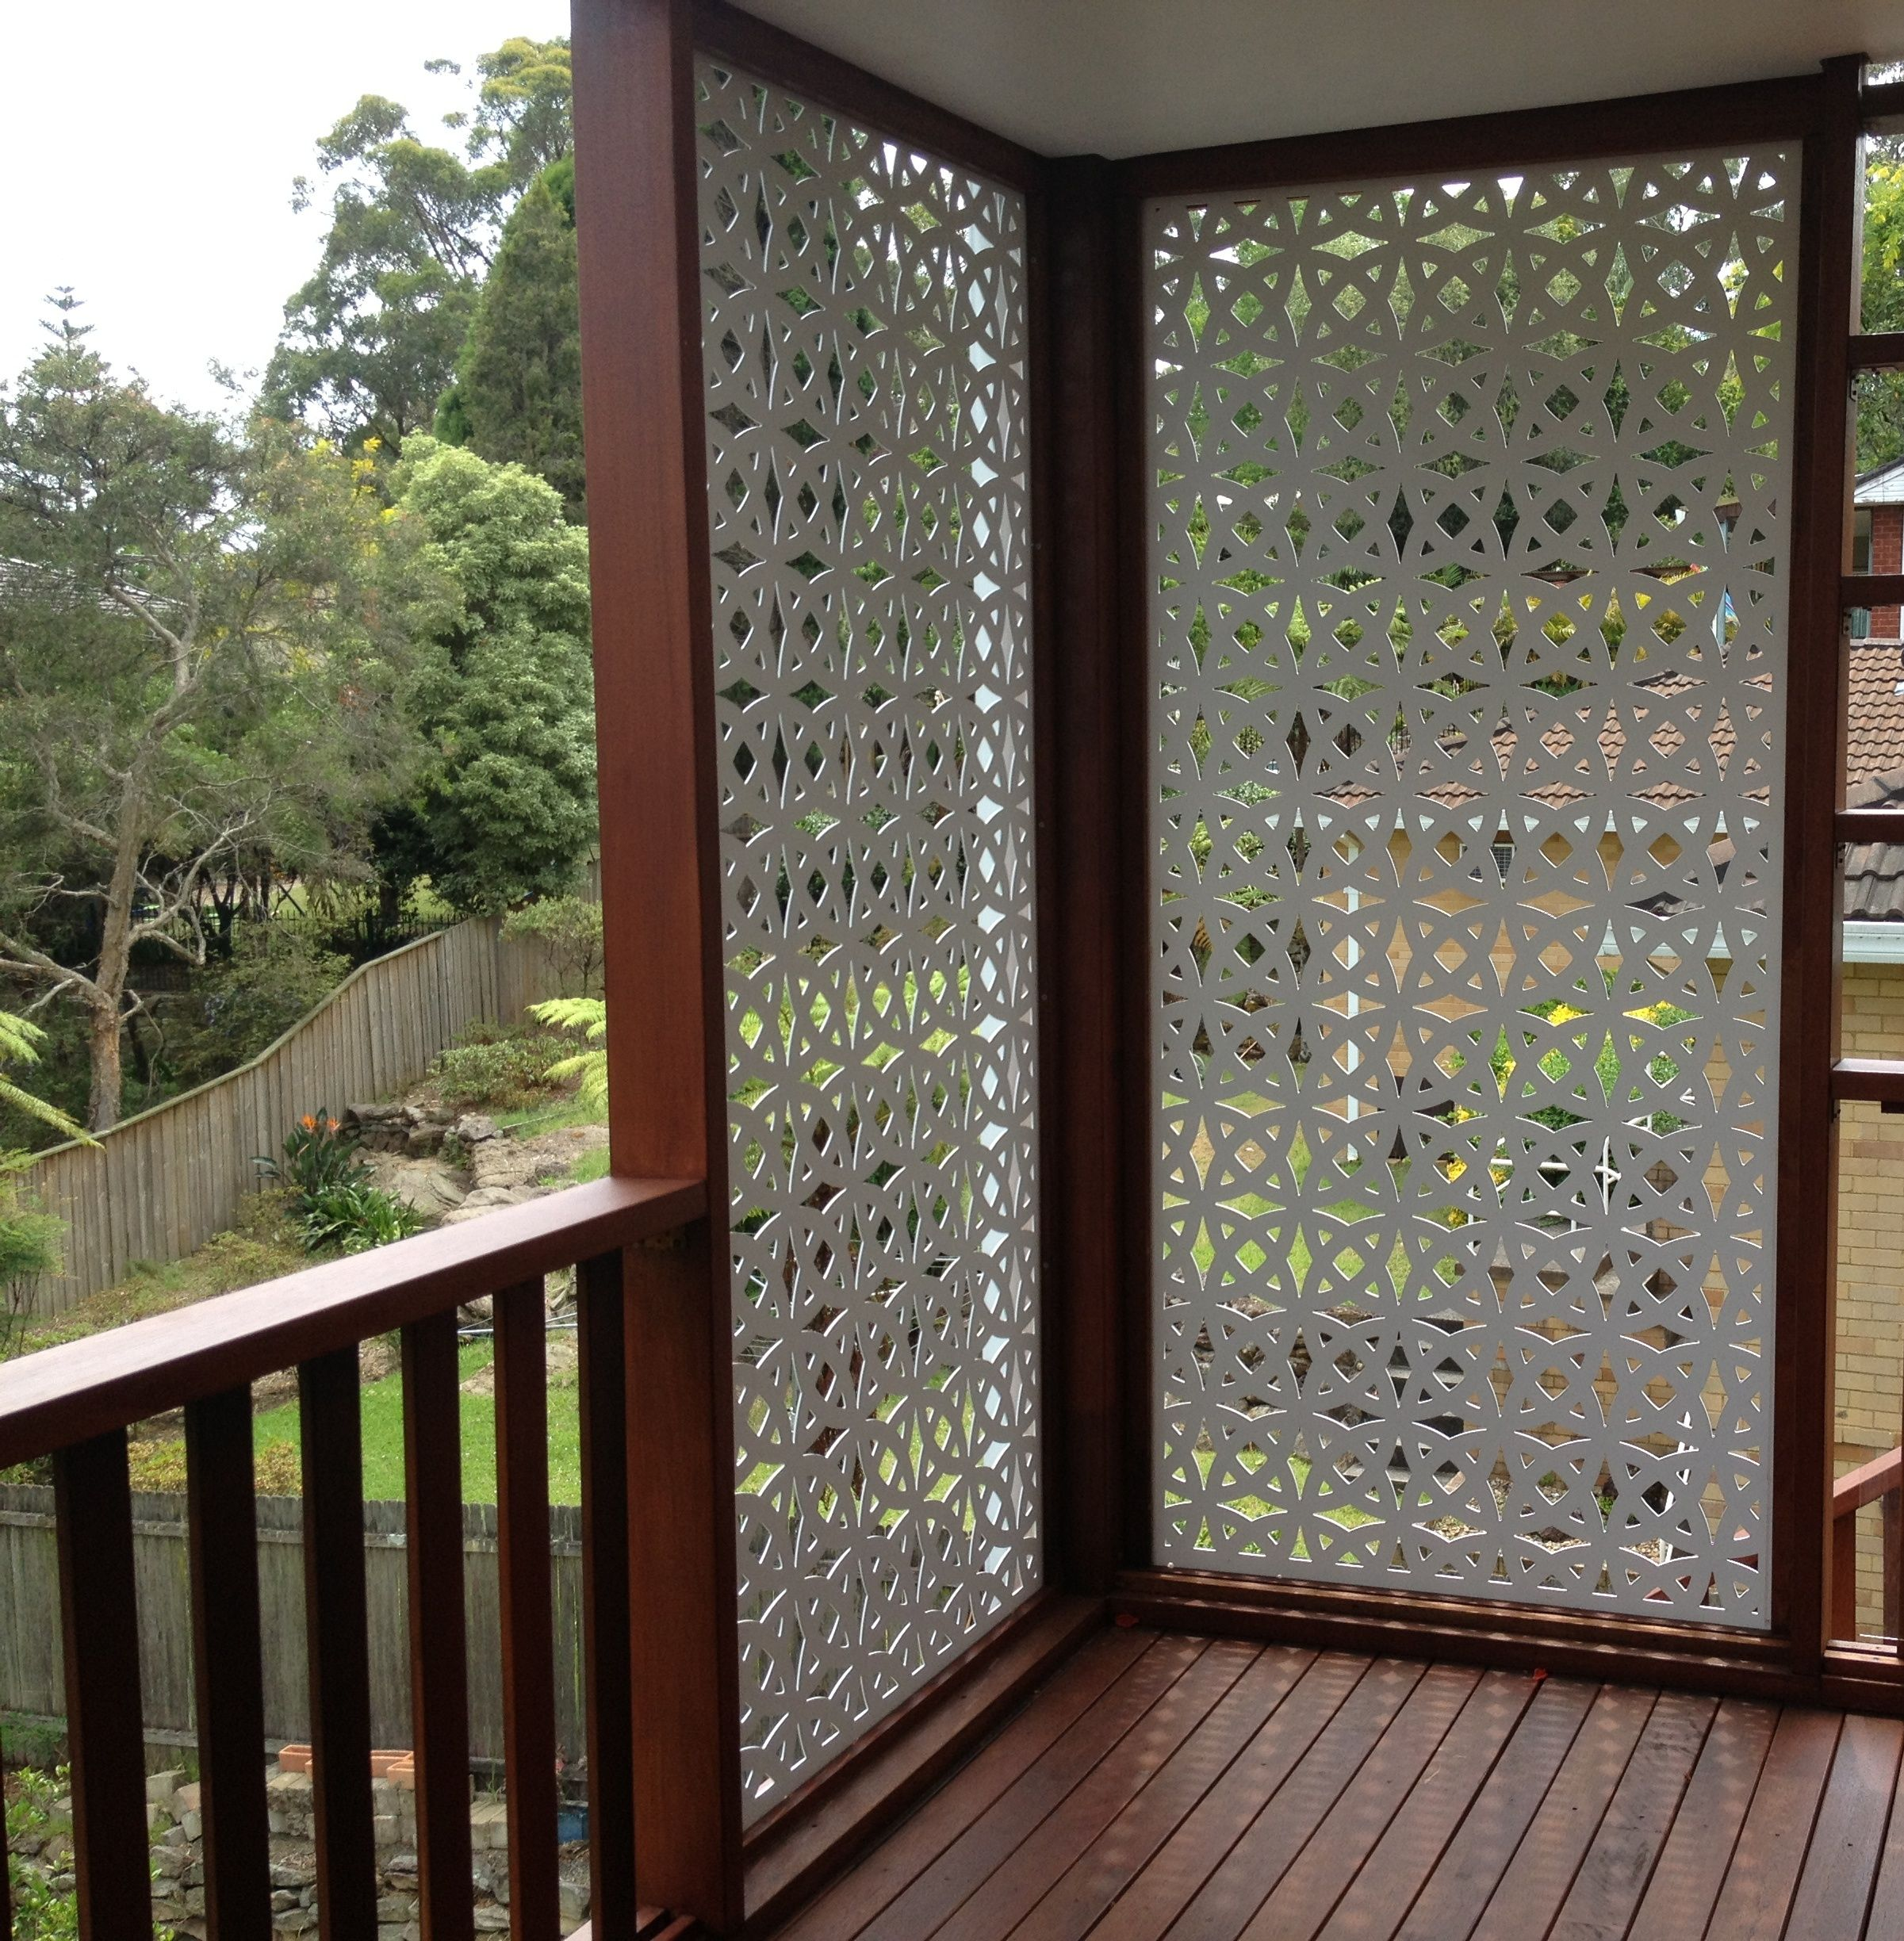 Timber Panels Timber Privacy Screens Internal Divider: patio privacy screen